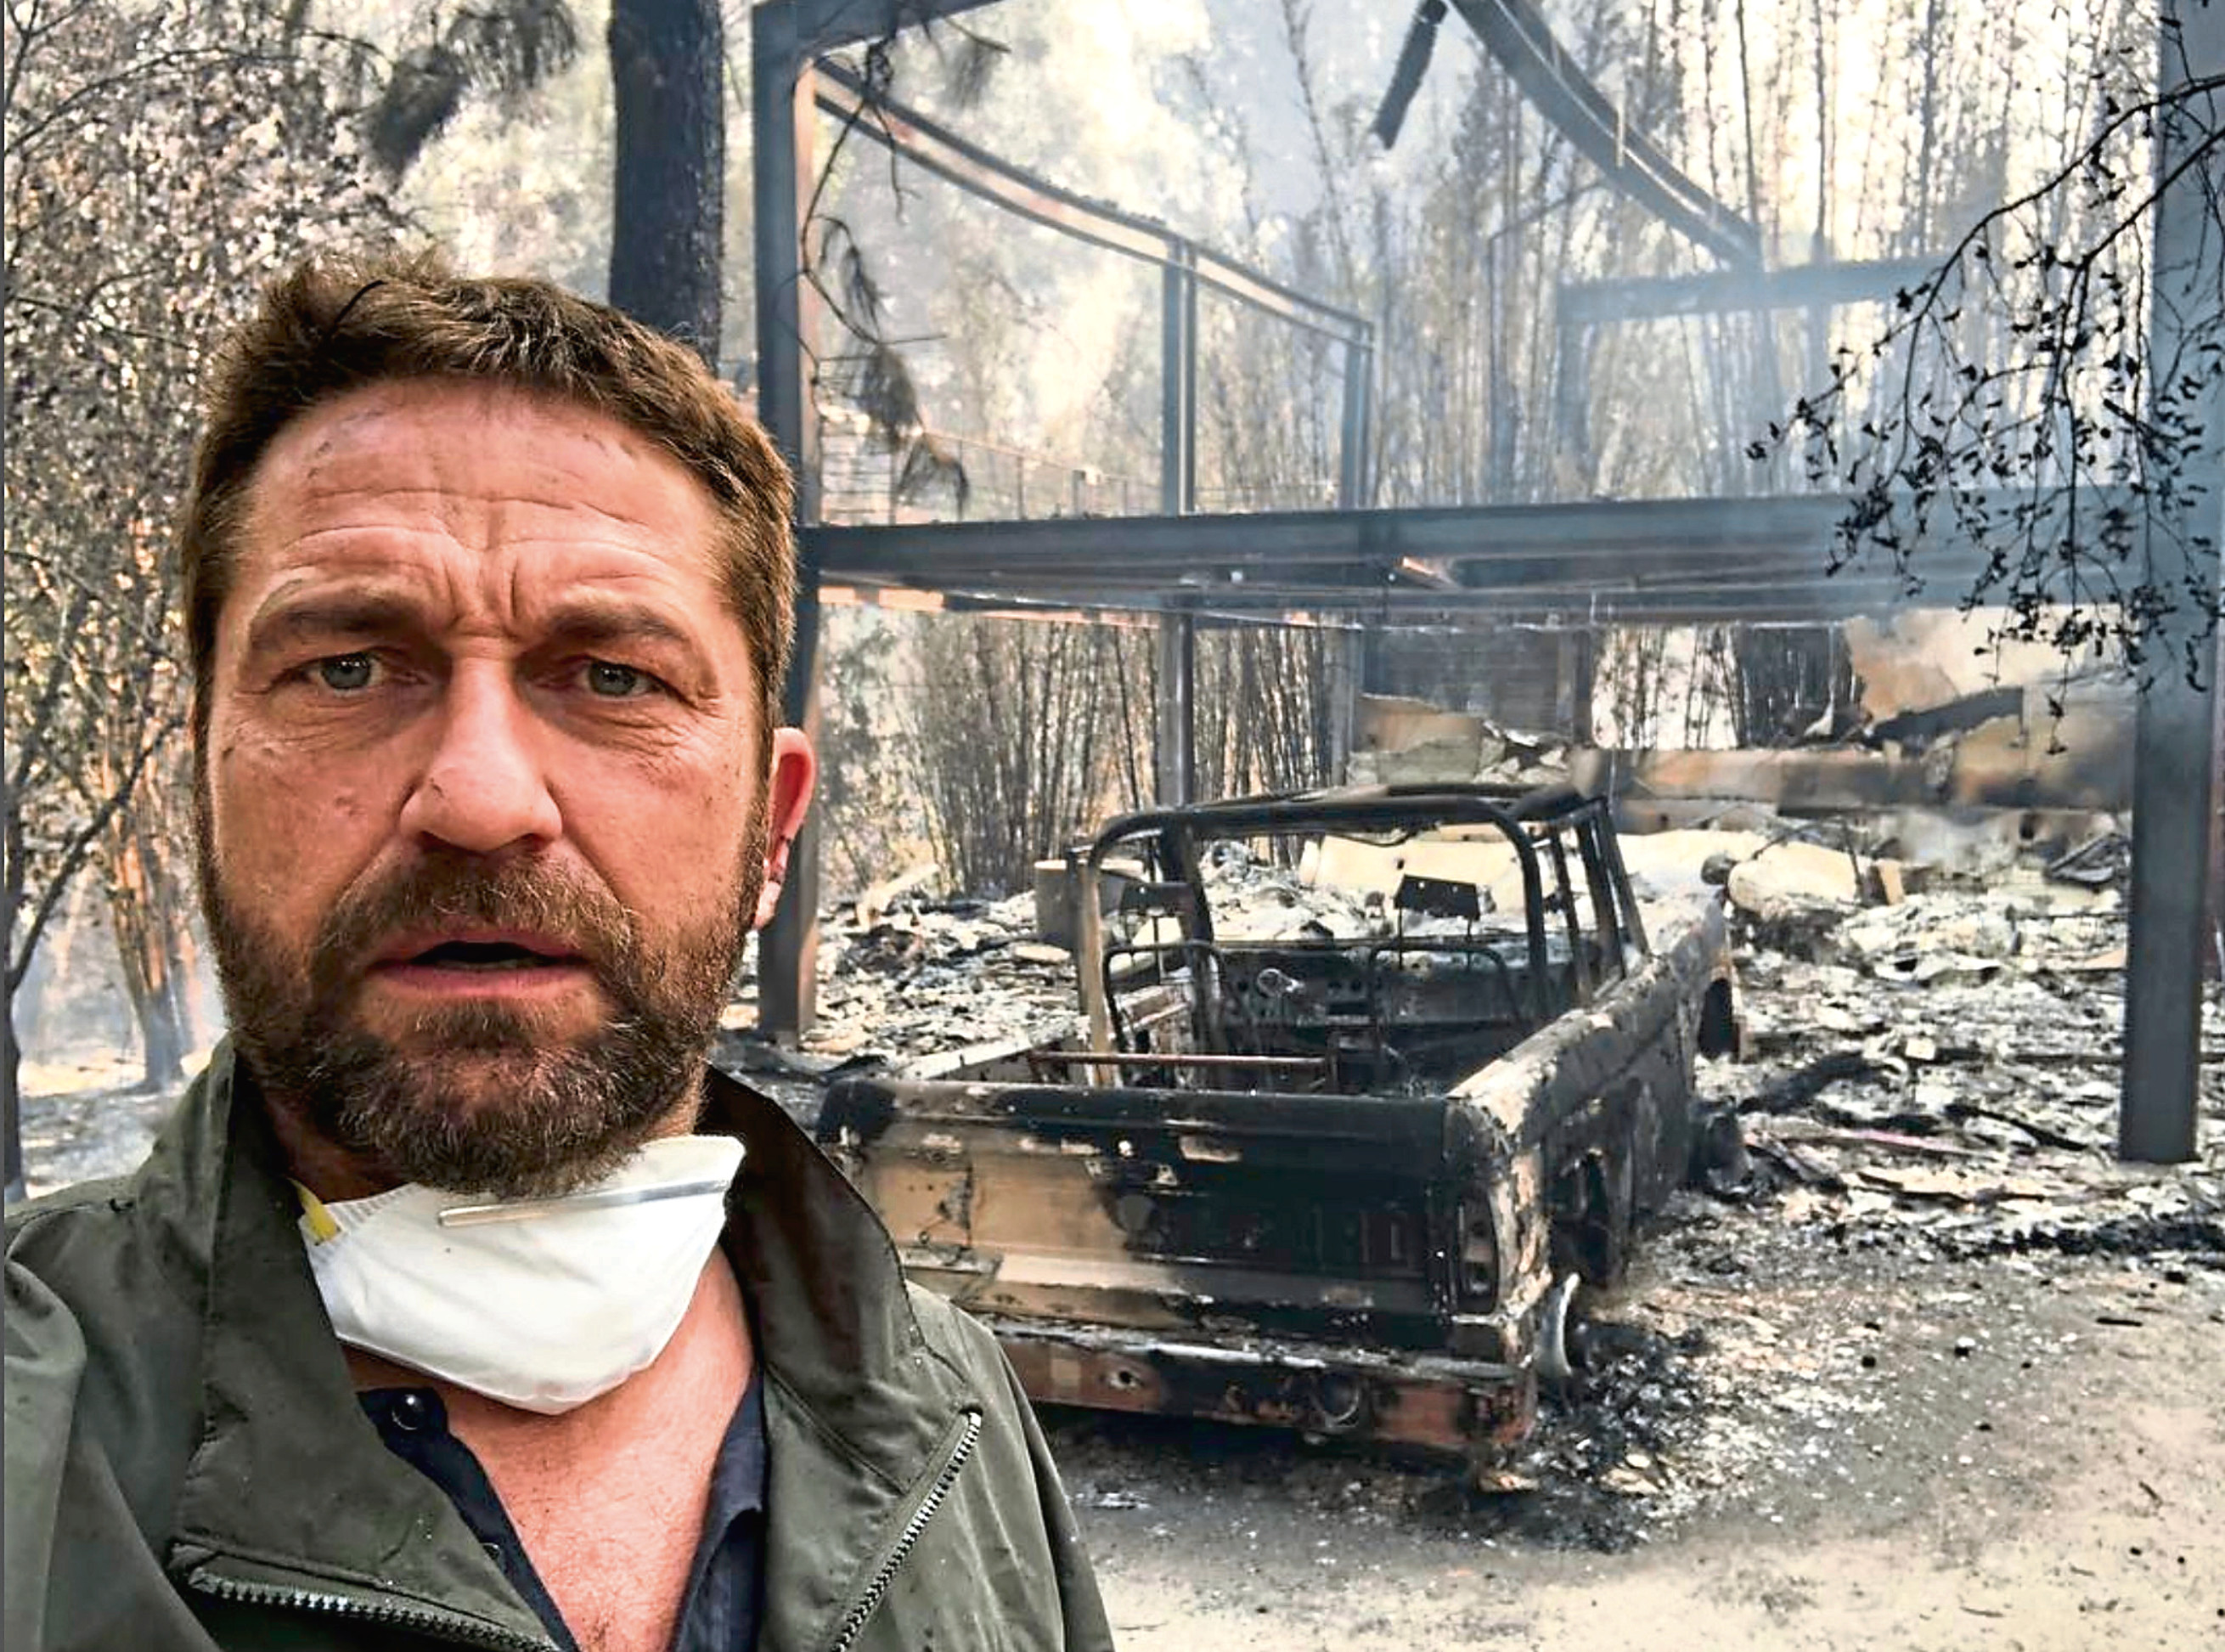 Gerard Butler shared a photo of his home, which was destroyed by the Woolsey Fire in southern California